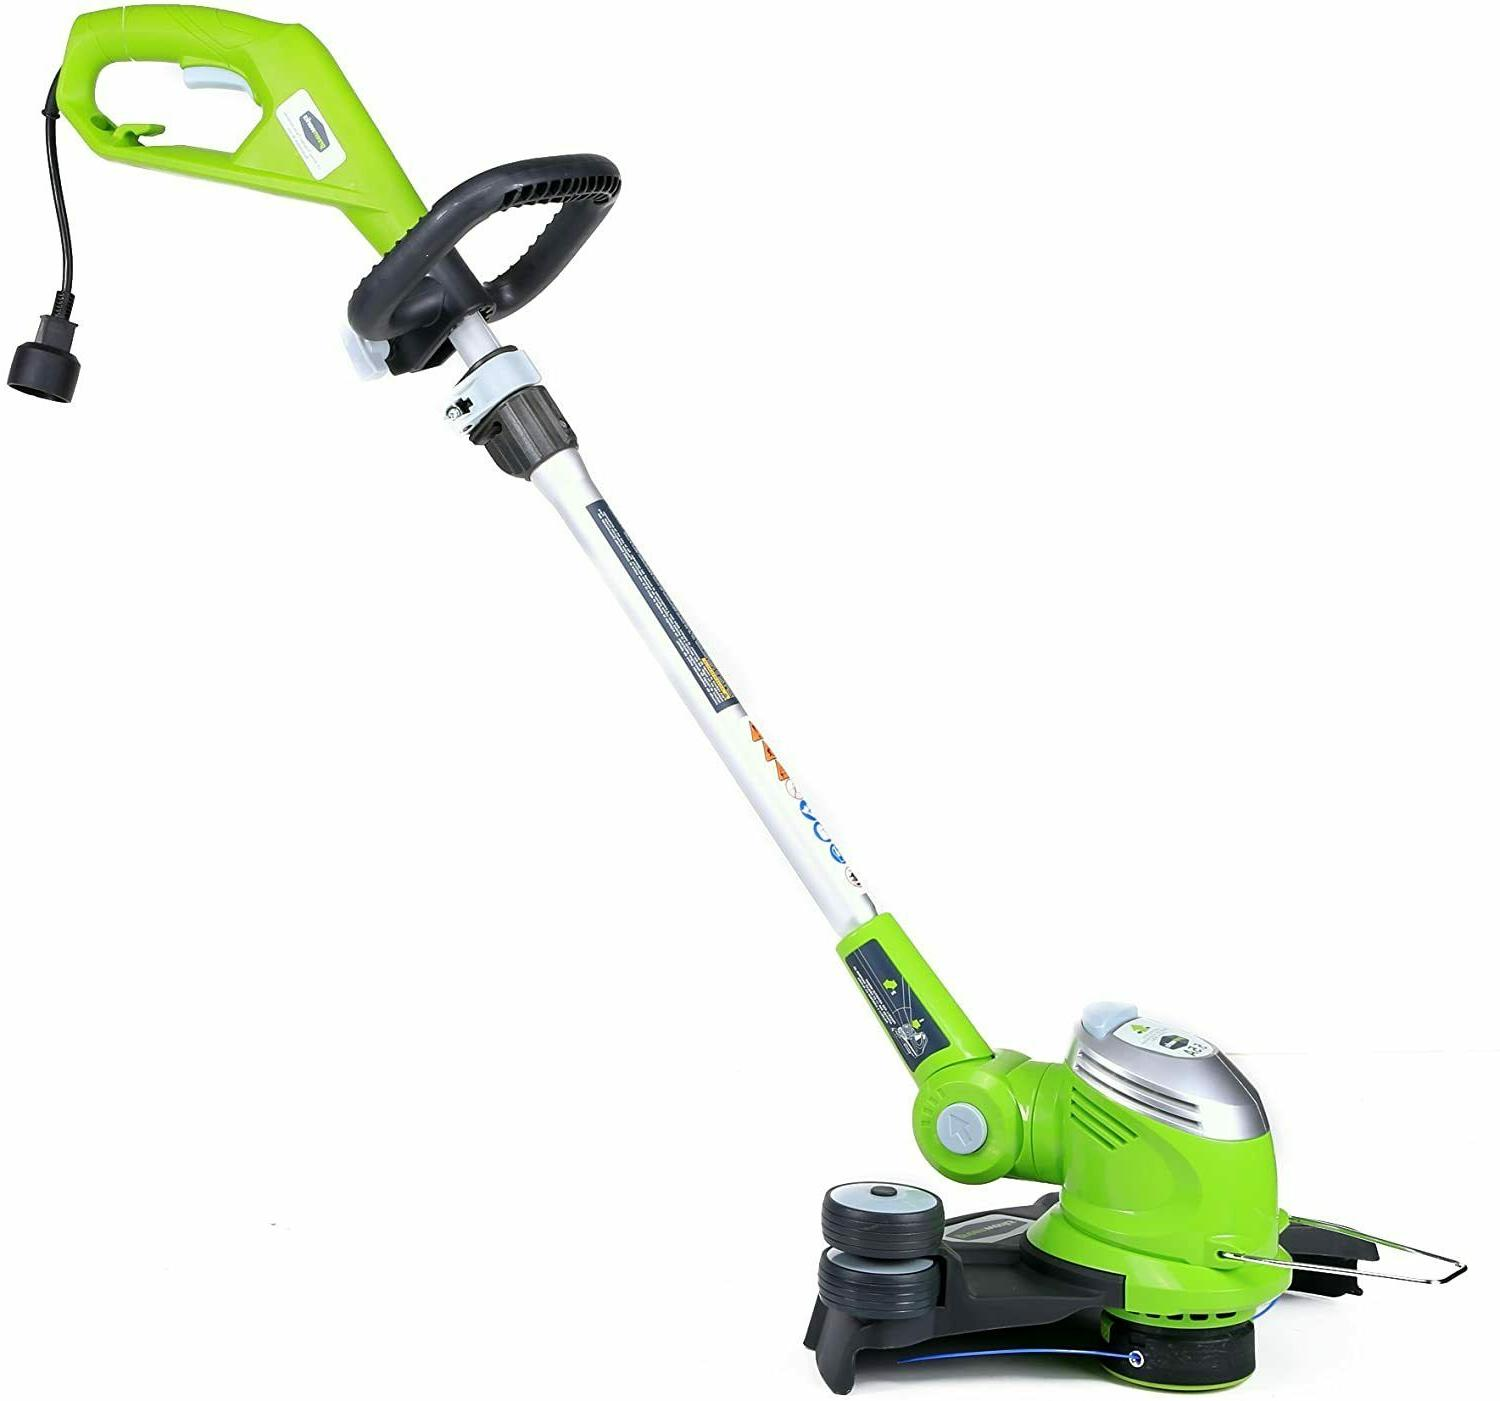 Electric Weed Eater Wacker String Grass Trimmer Cutter Lawn